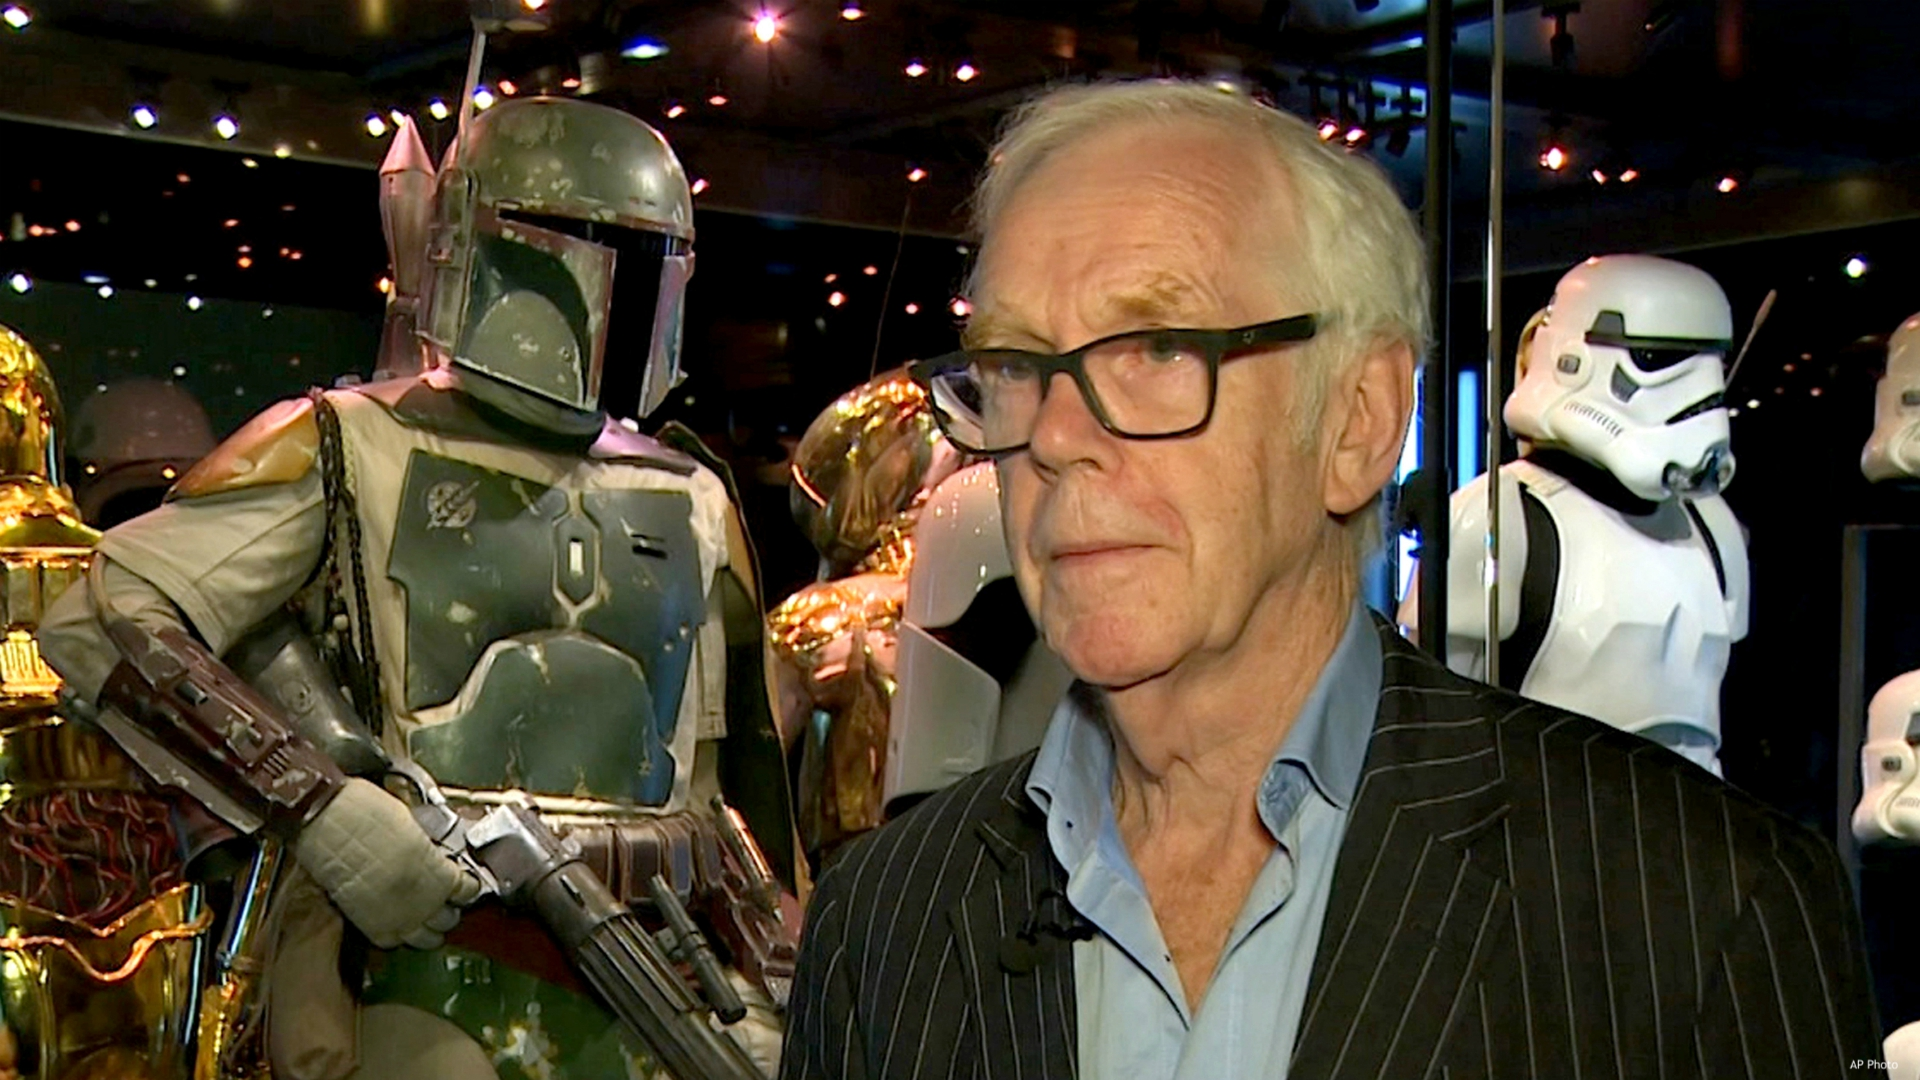 """Jeremy Bulloch speaks in front of the costume he wore while playing Boba Fett in """"Star Wars: Episode V – The Empire Strikes Back"""" and """"Star Wars: Episode VI – Return of the Jedi"""" at the Star Wars Identities exhibition in London on July 26, 2017. Bulloch, the English actor who played Boba Fett in the original """"Star Wars"""" trilogy, has died. His agents said in a statement that he died in a London hospital Thursday, Dec. 17, 2020, after years of suffering from Parkinson's disease. He was 75. (AP Photo)"""